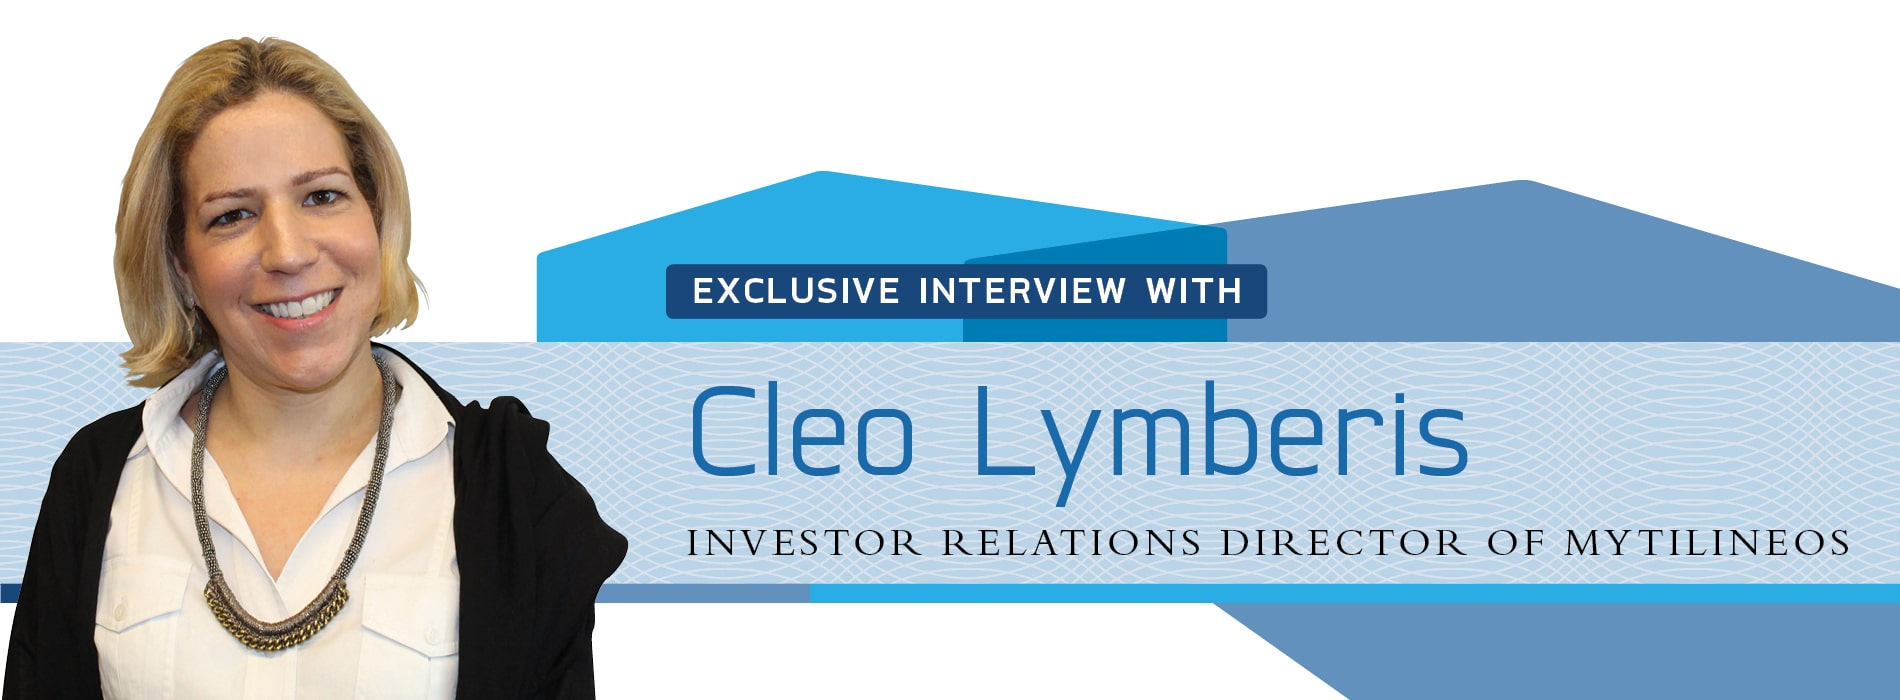 Interview on Greece's energy sector with Cleo Lymberis of MYTILINEOS